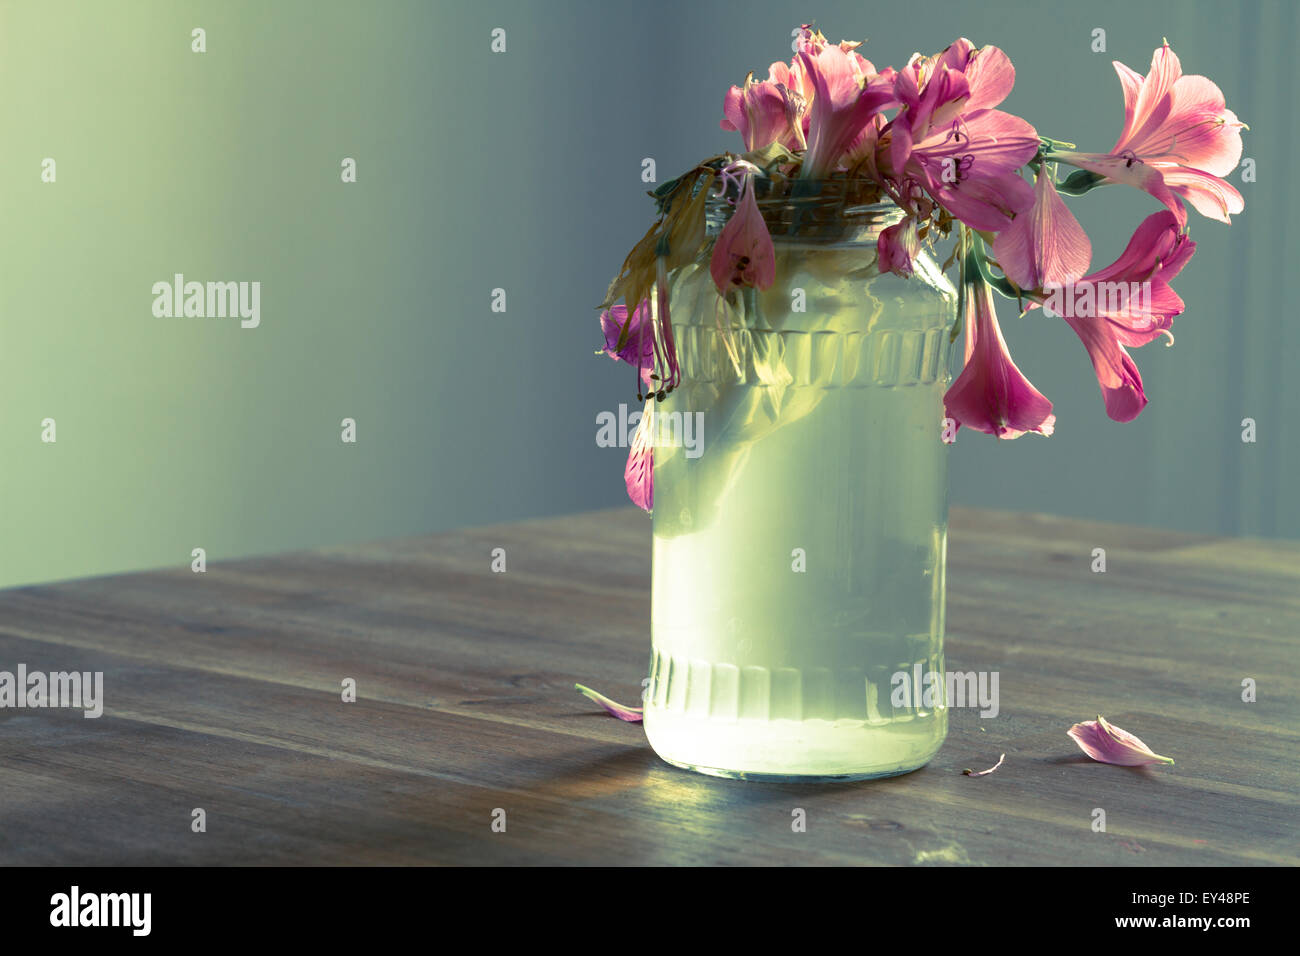 Melancholic scene of a jar with flowers - Stock Image